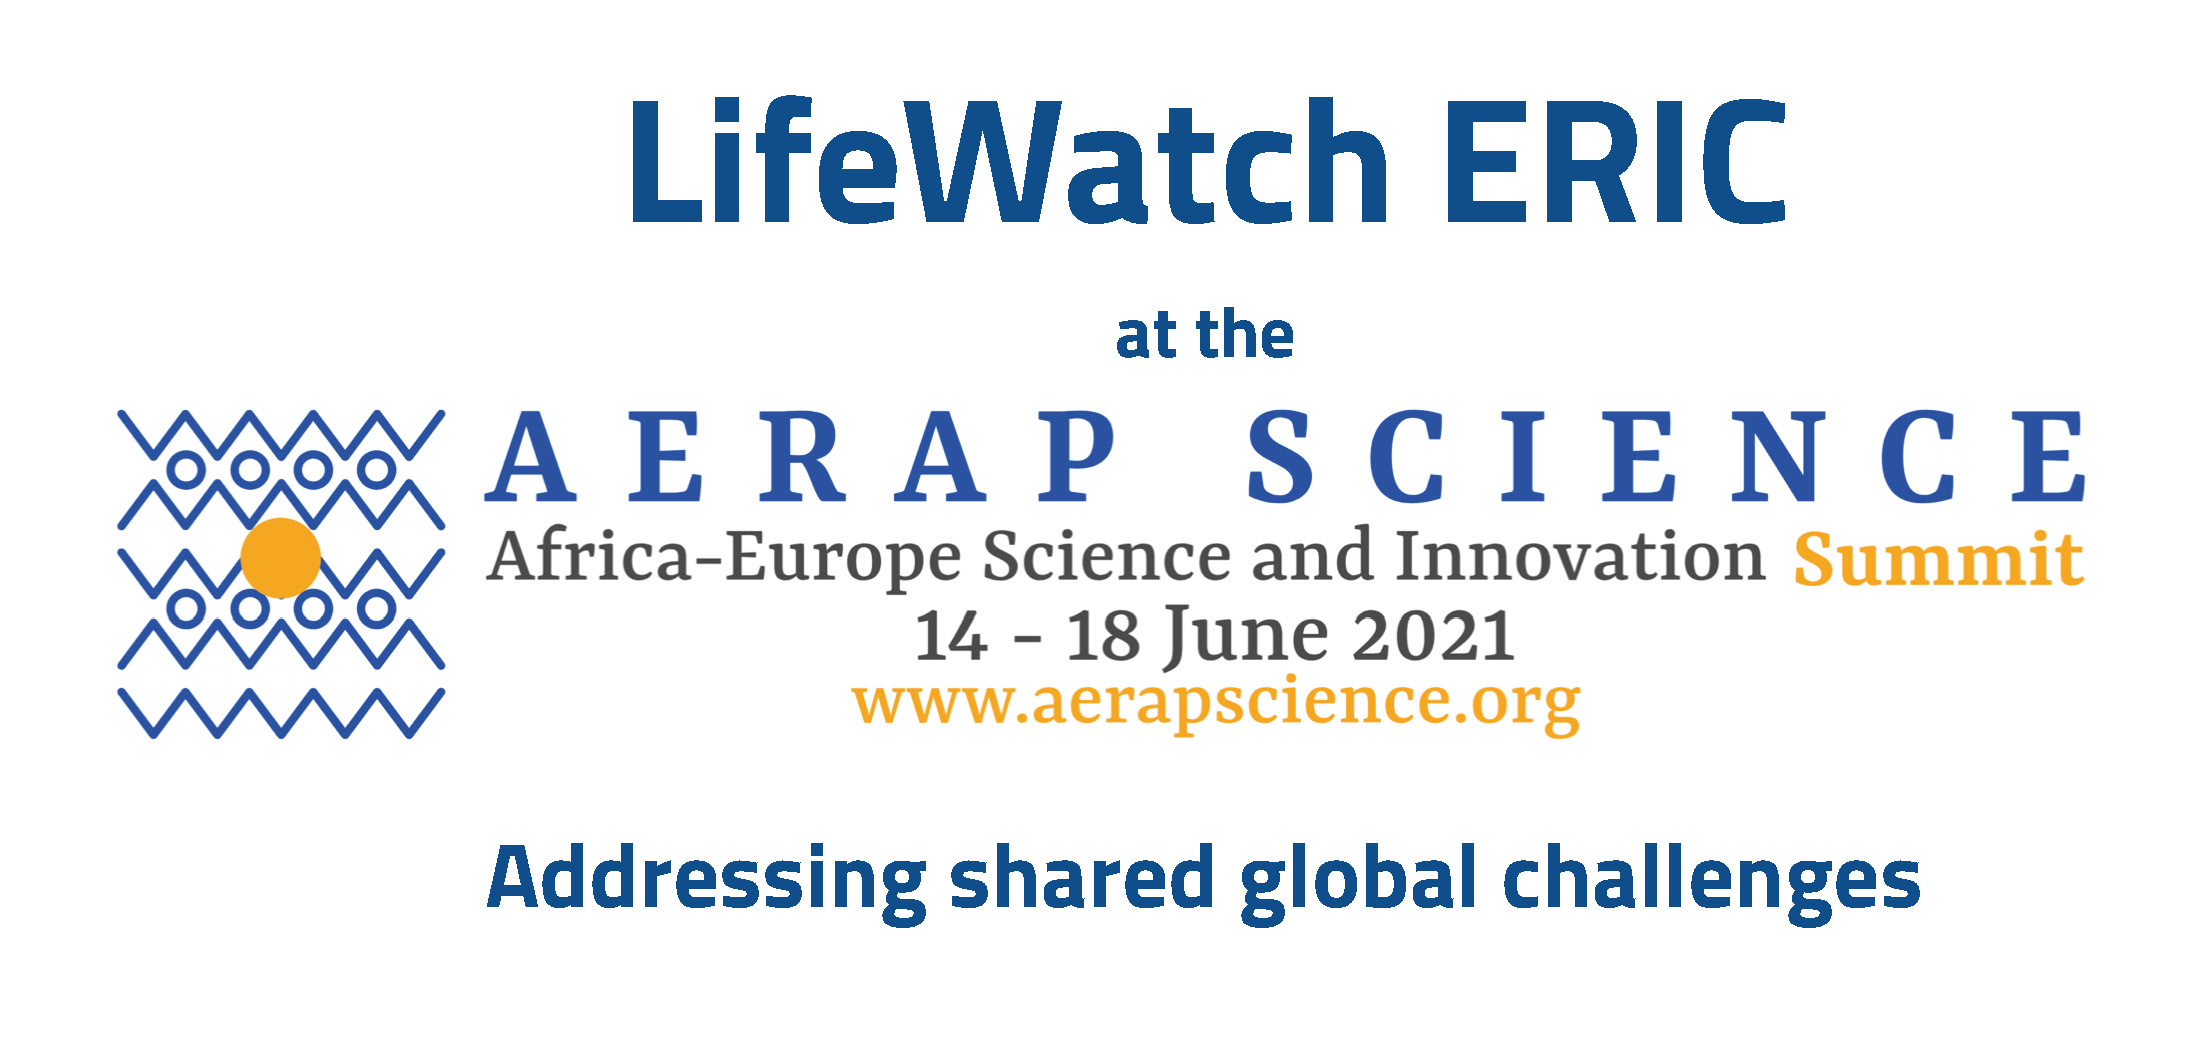 LifeWatch ERIC at the AERAP Science Summit